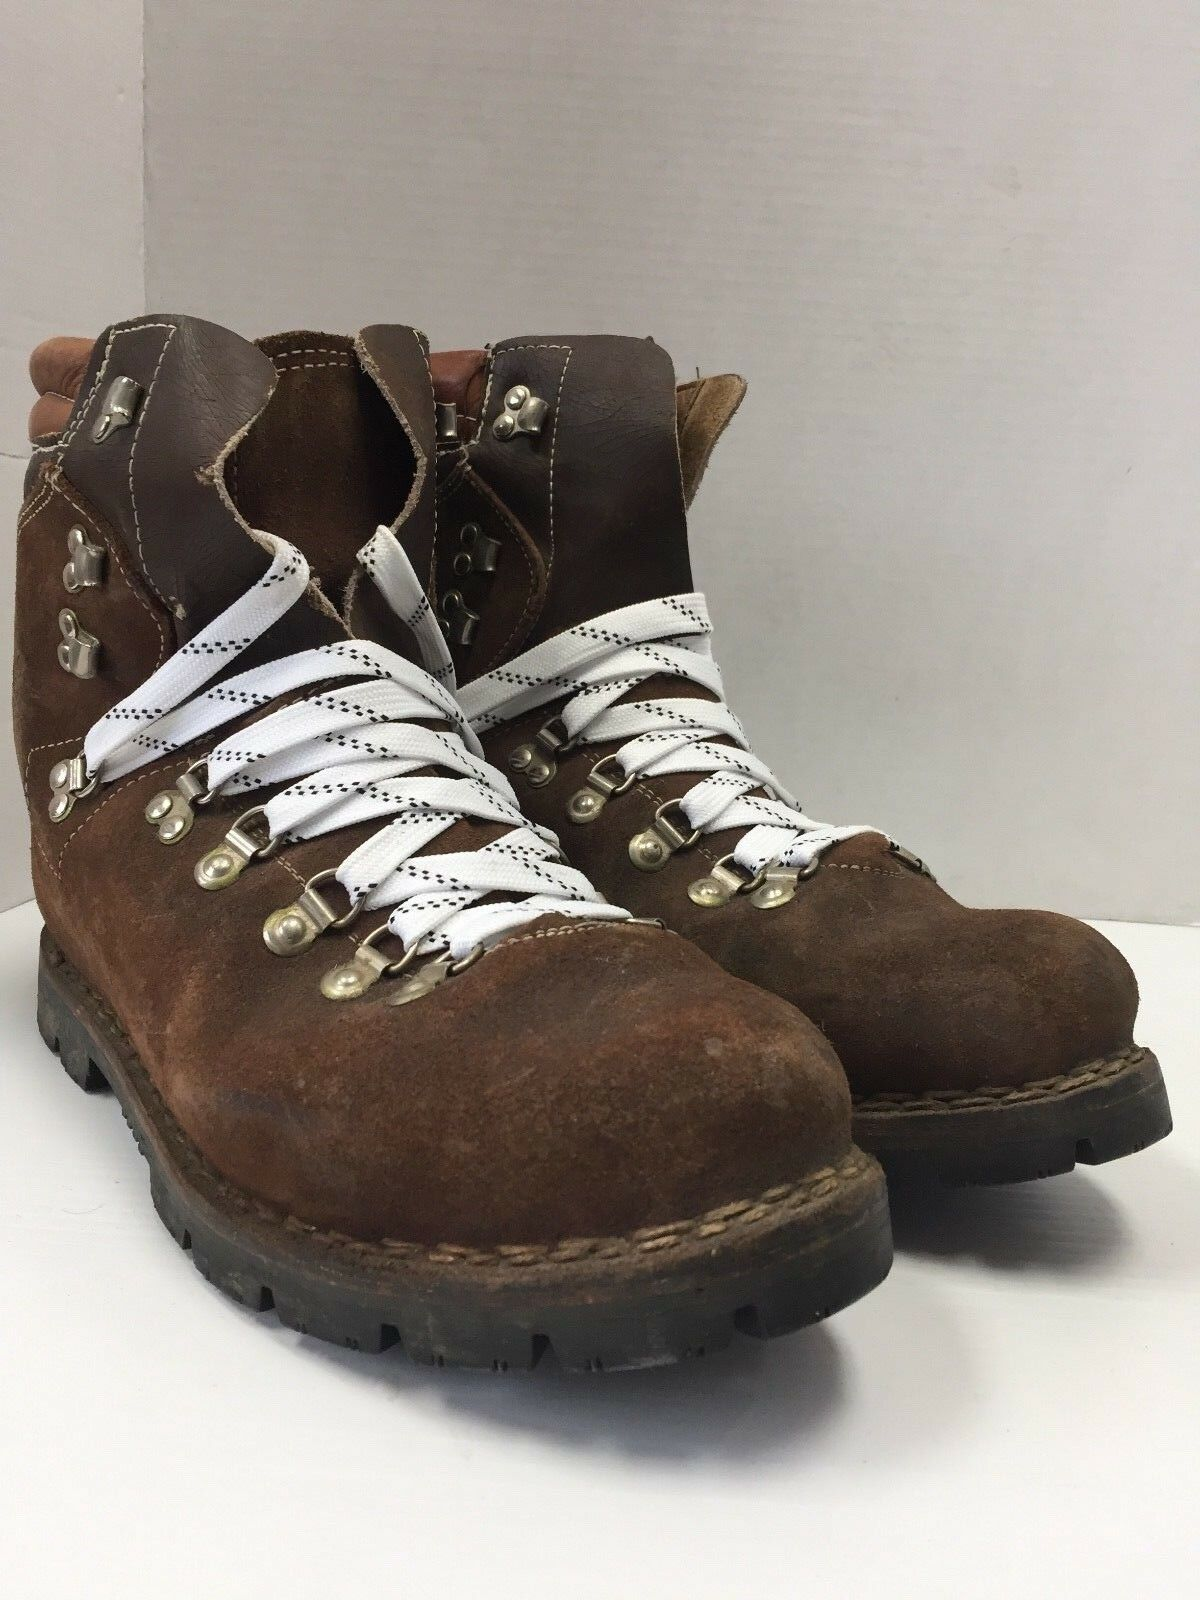 Vintage colorado Brown Leather Lace up Mountaineer Traill Boss hiker boots 12 47